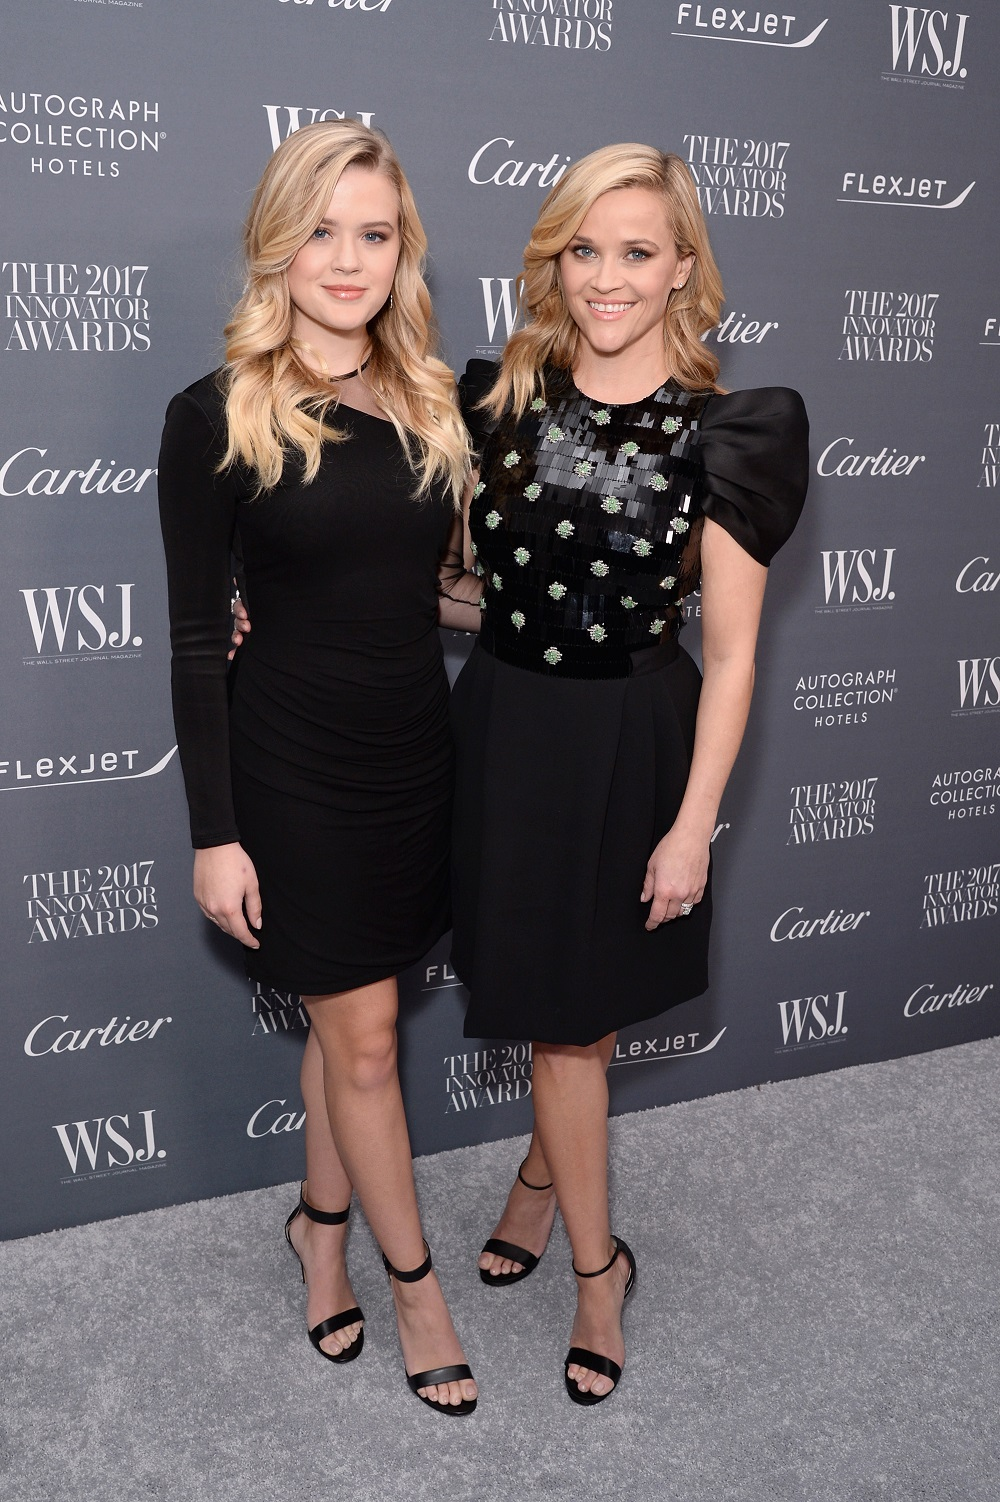 WSJ Magazine innovator awards, reese witherspoon